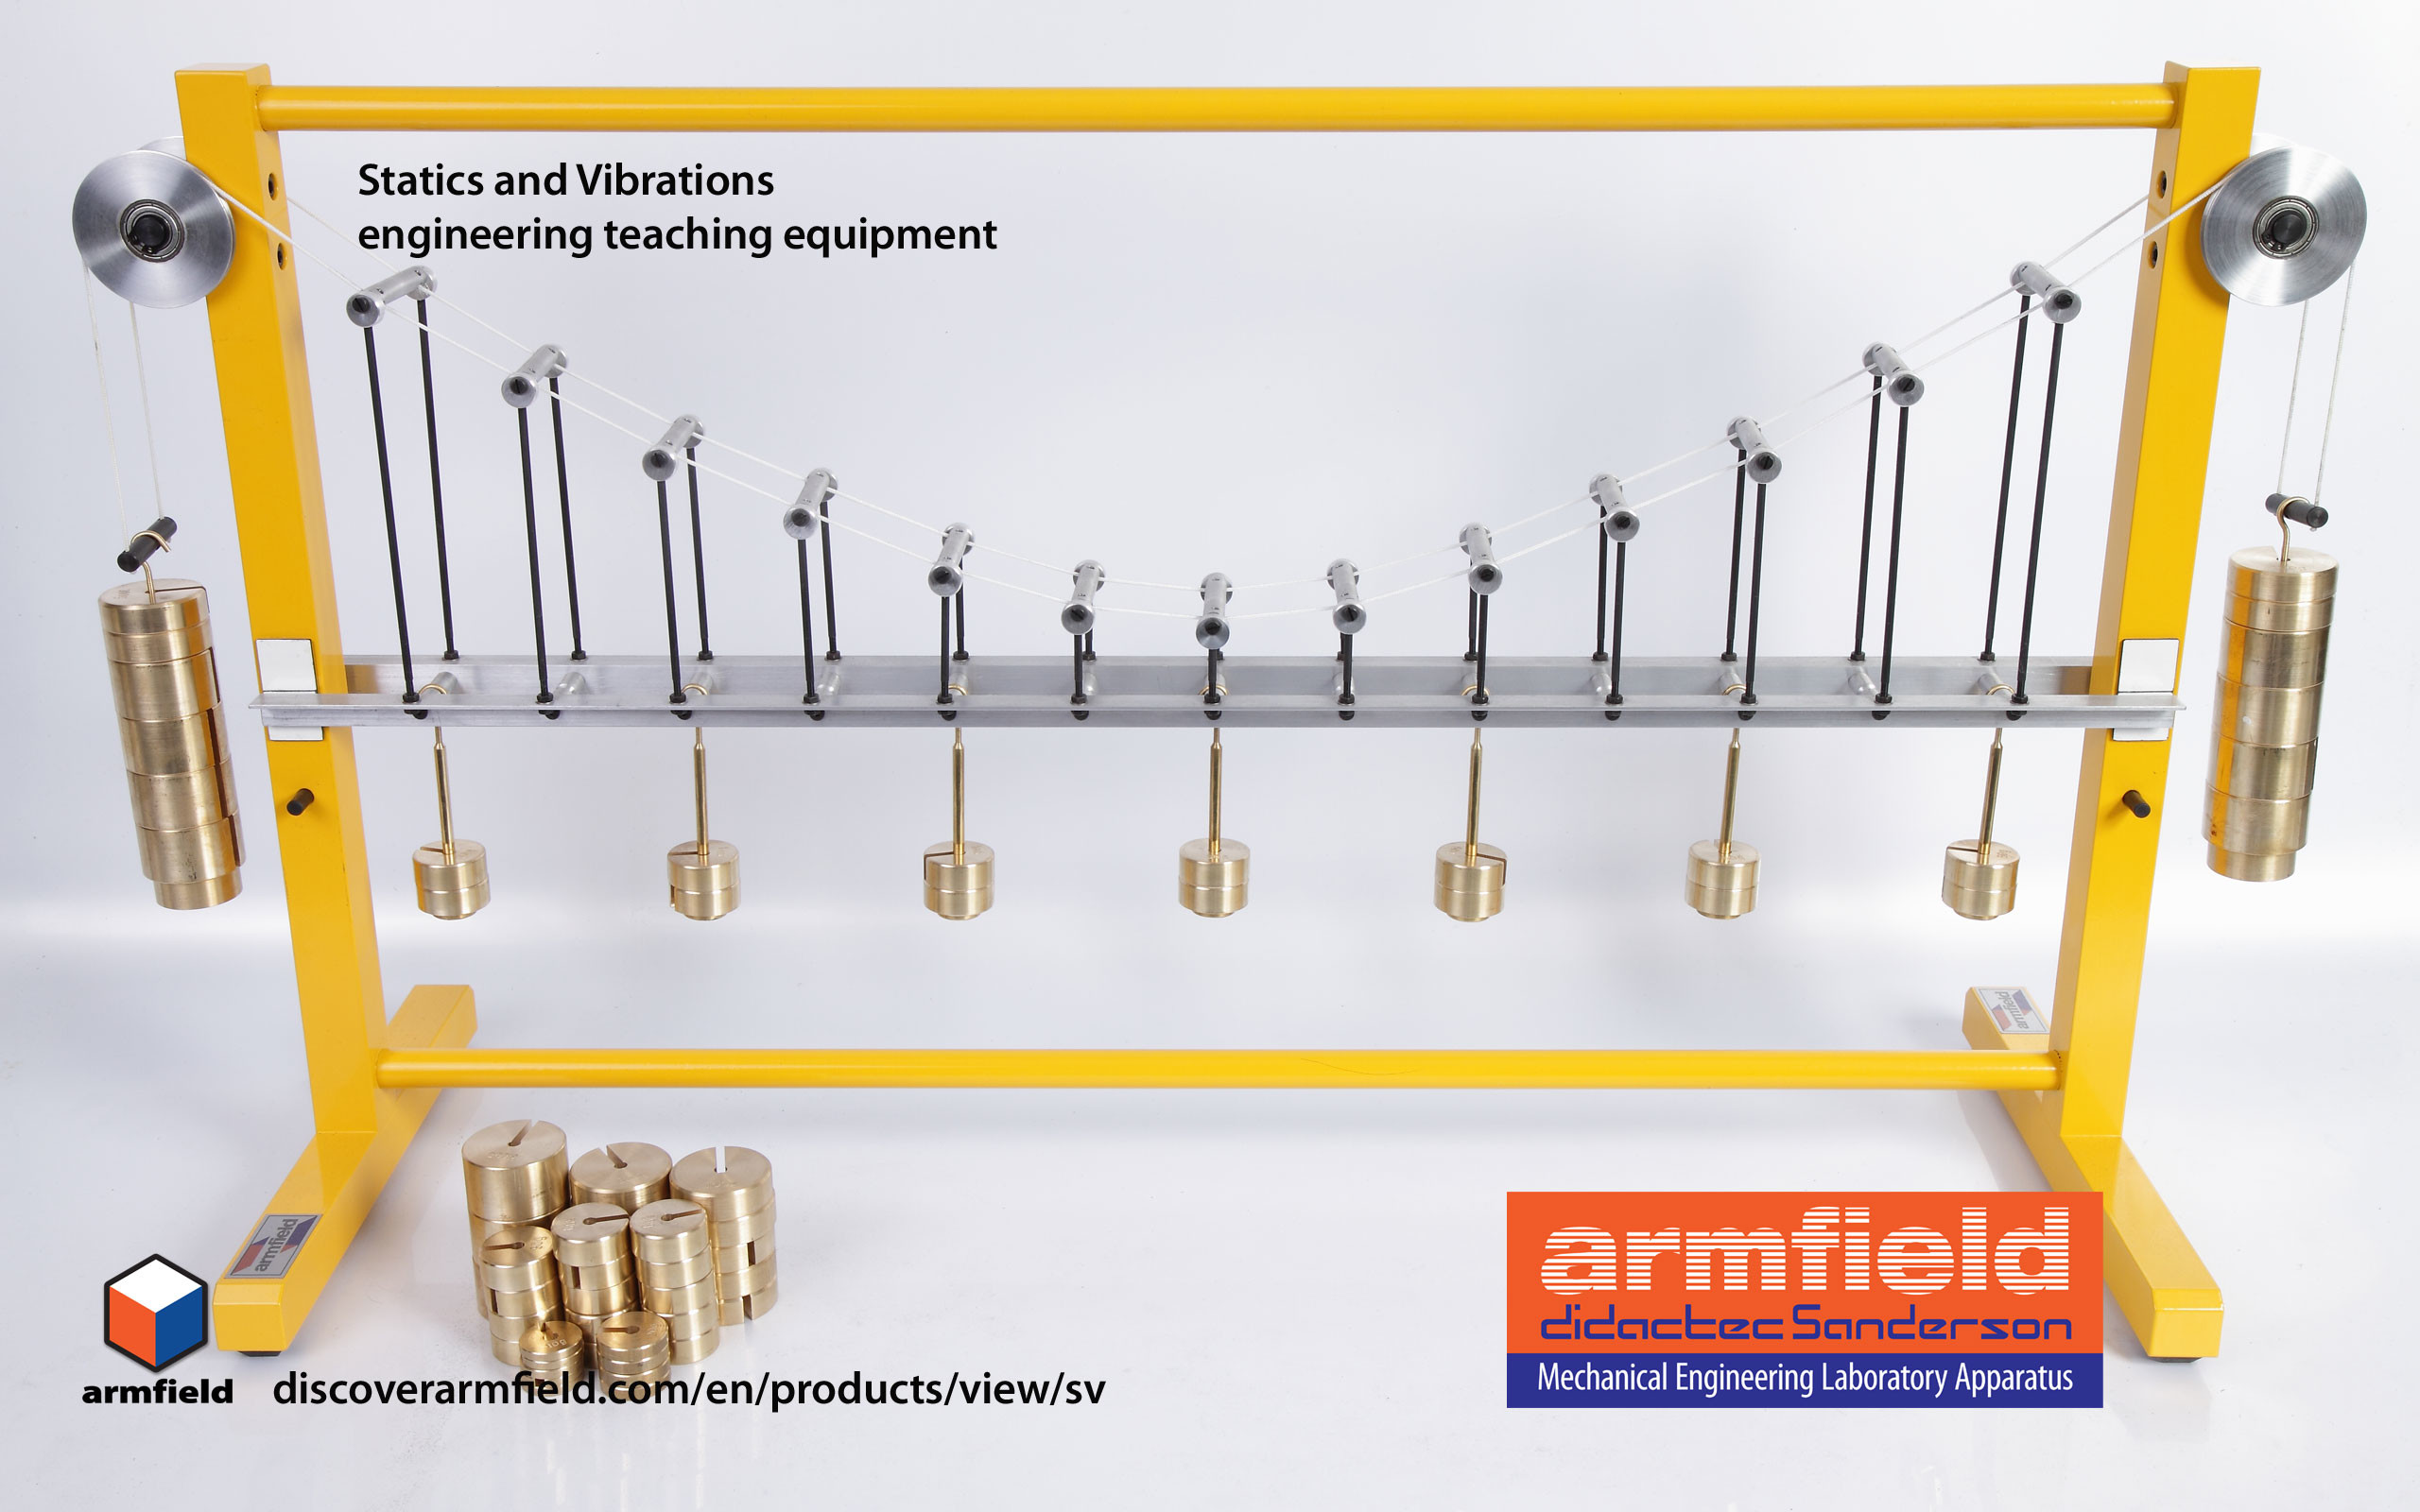 2560x1600 Armfield - Mechanical engineering equipment (statics and vibrations - SV)